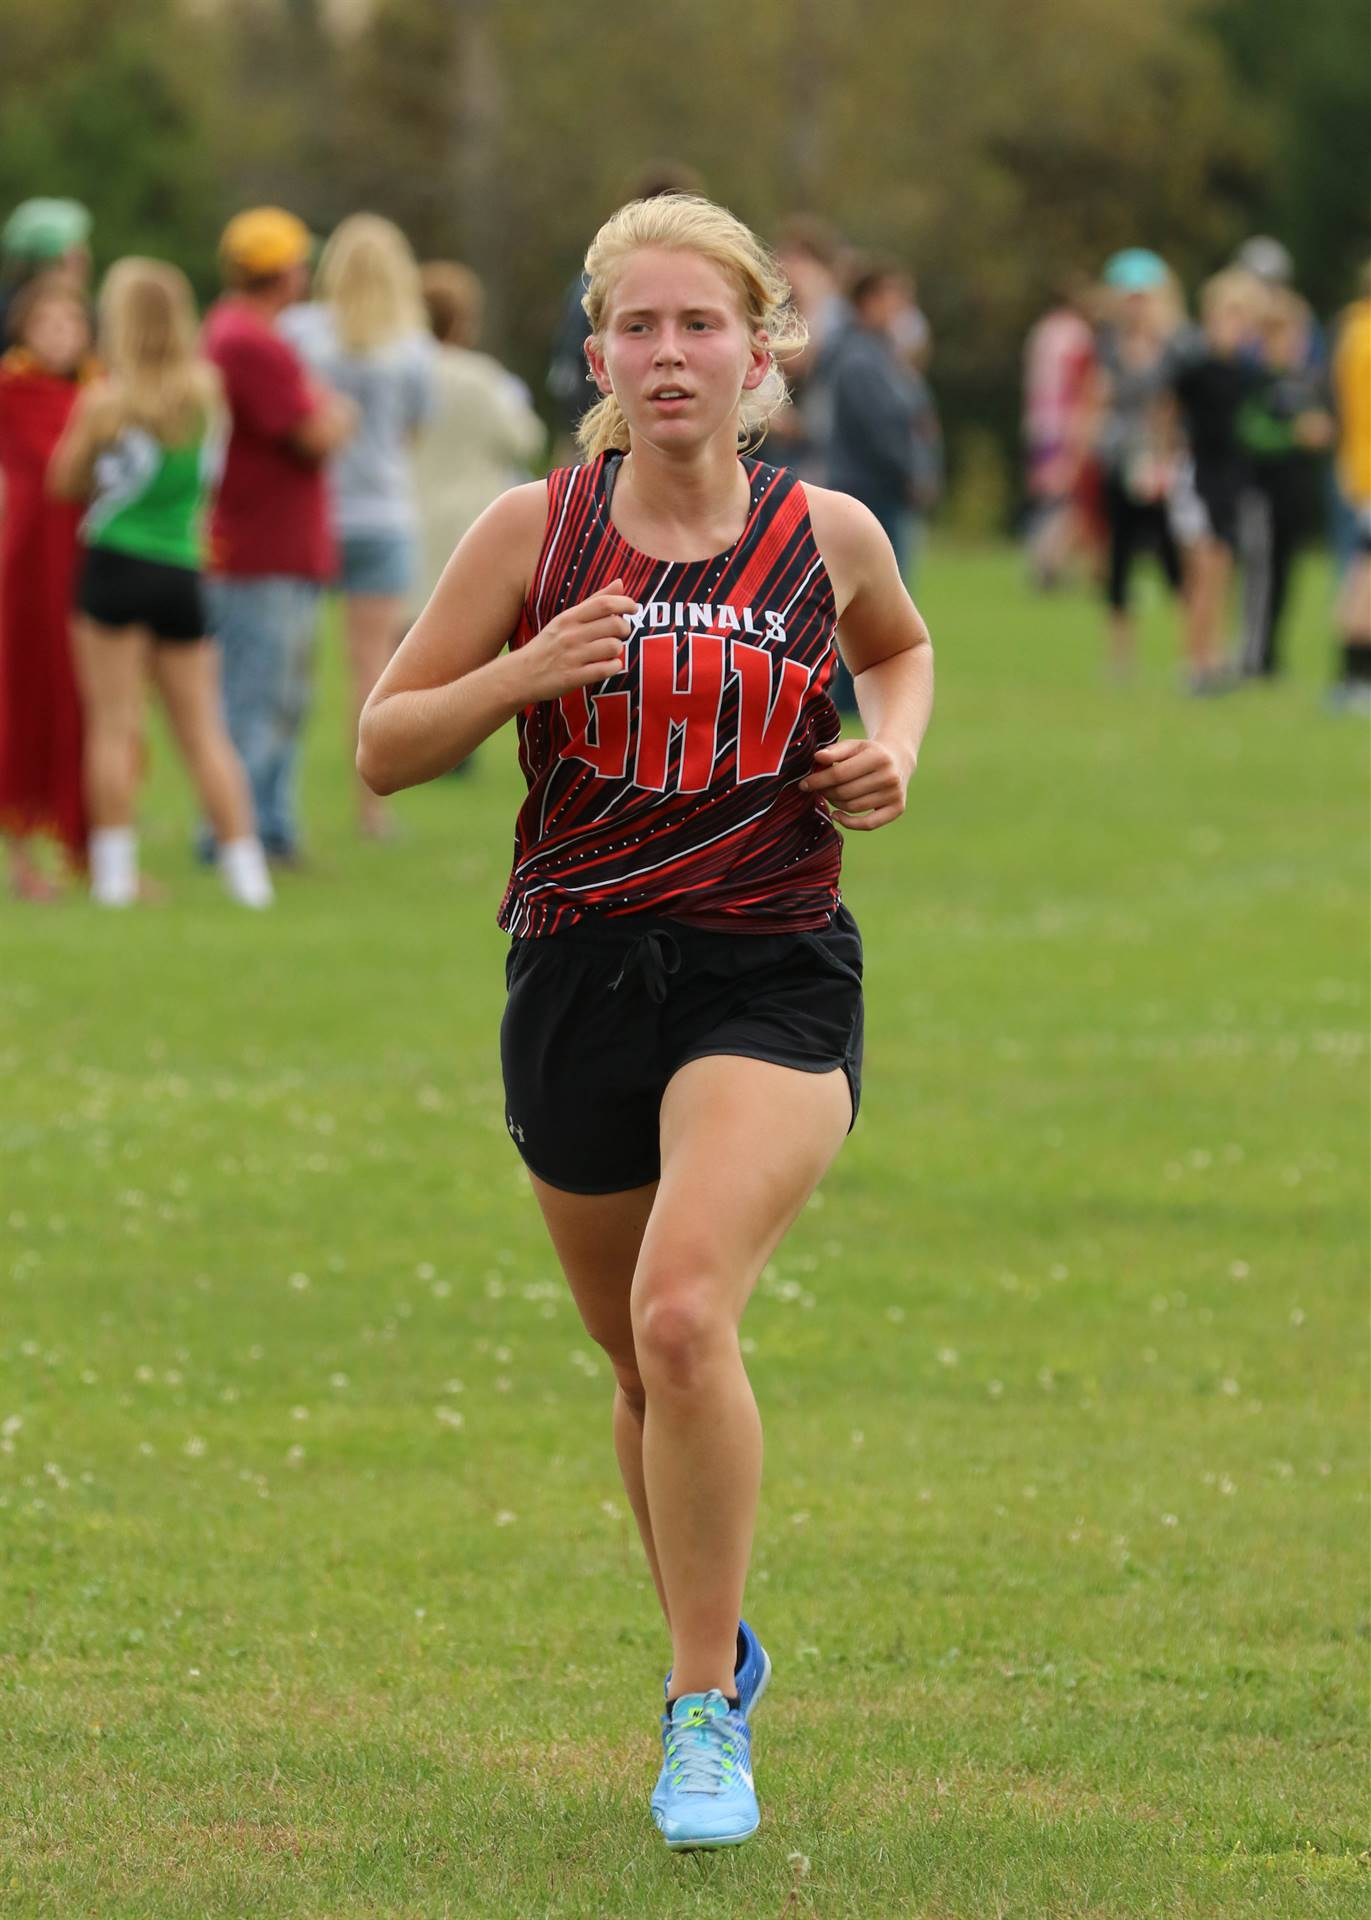 GHV High School girls cross country runner competing